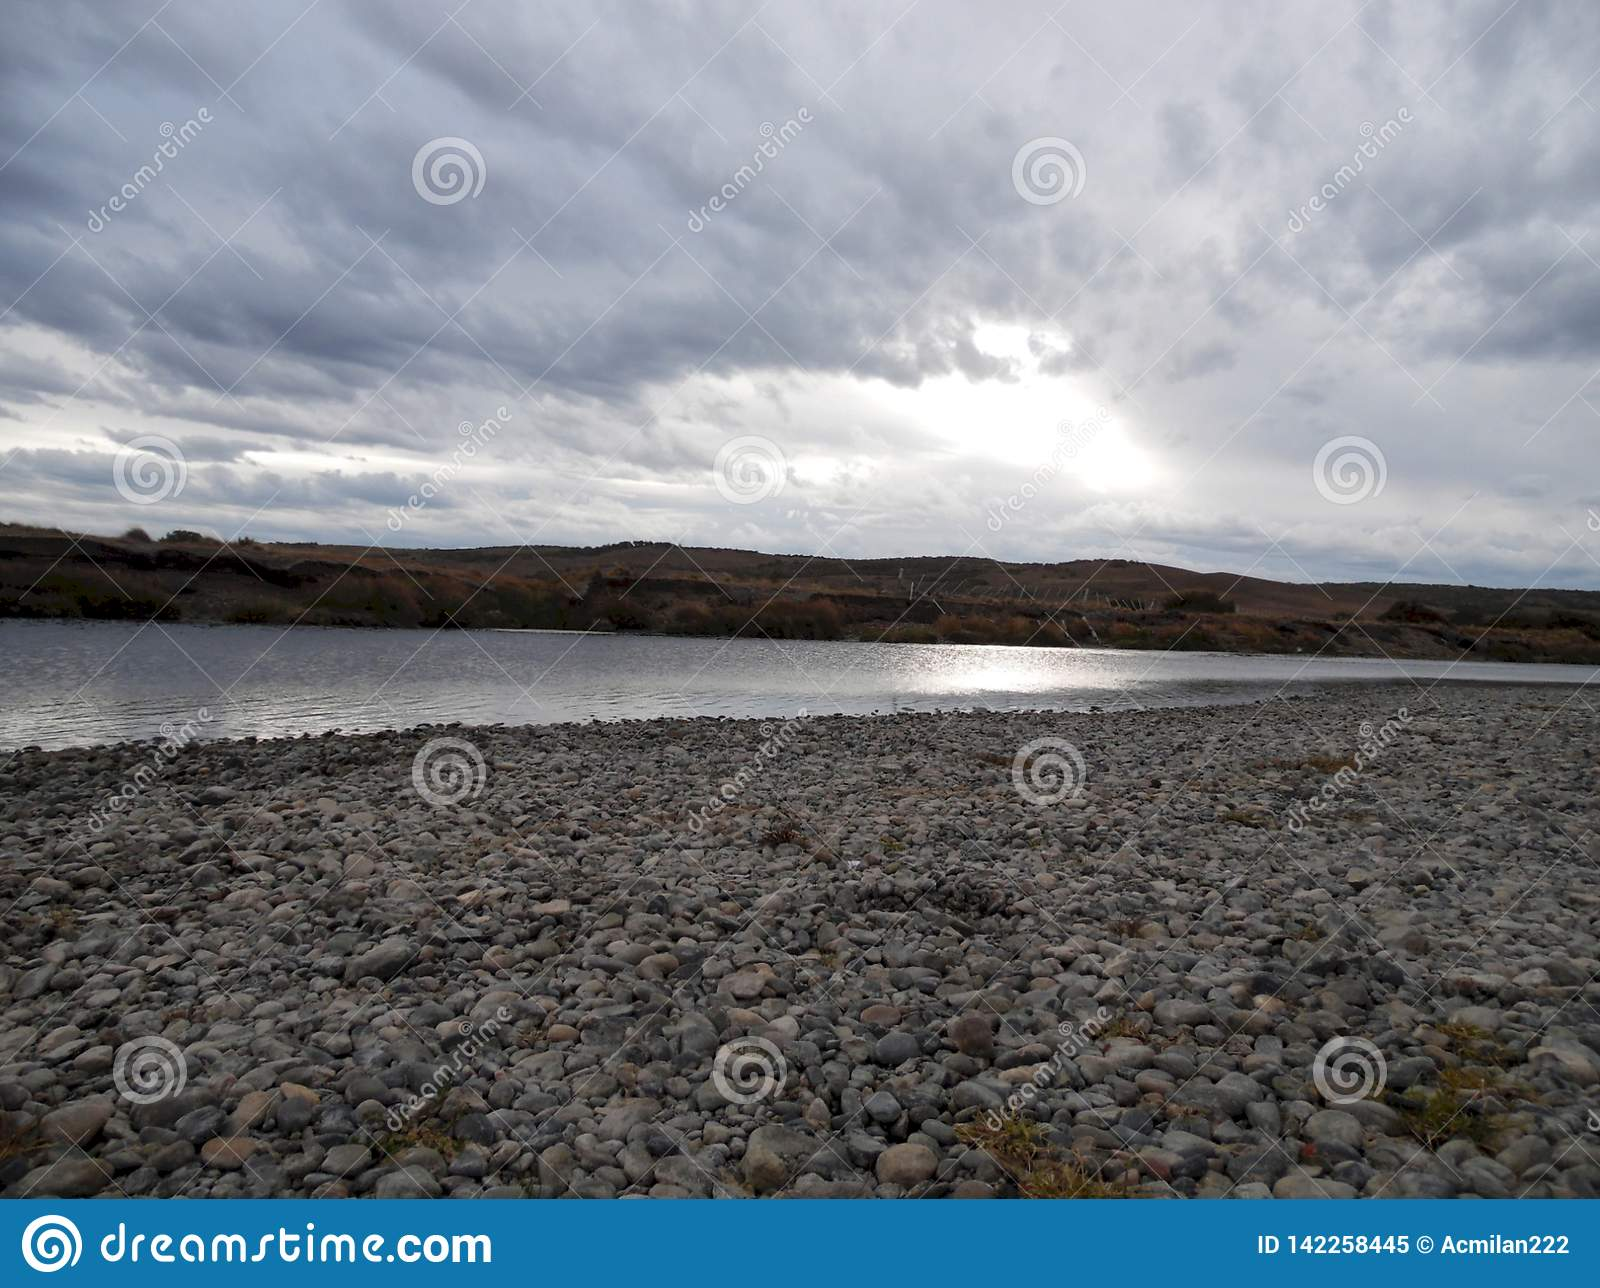 River Landscape on a Cloudy Day